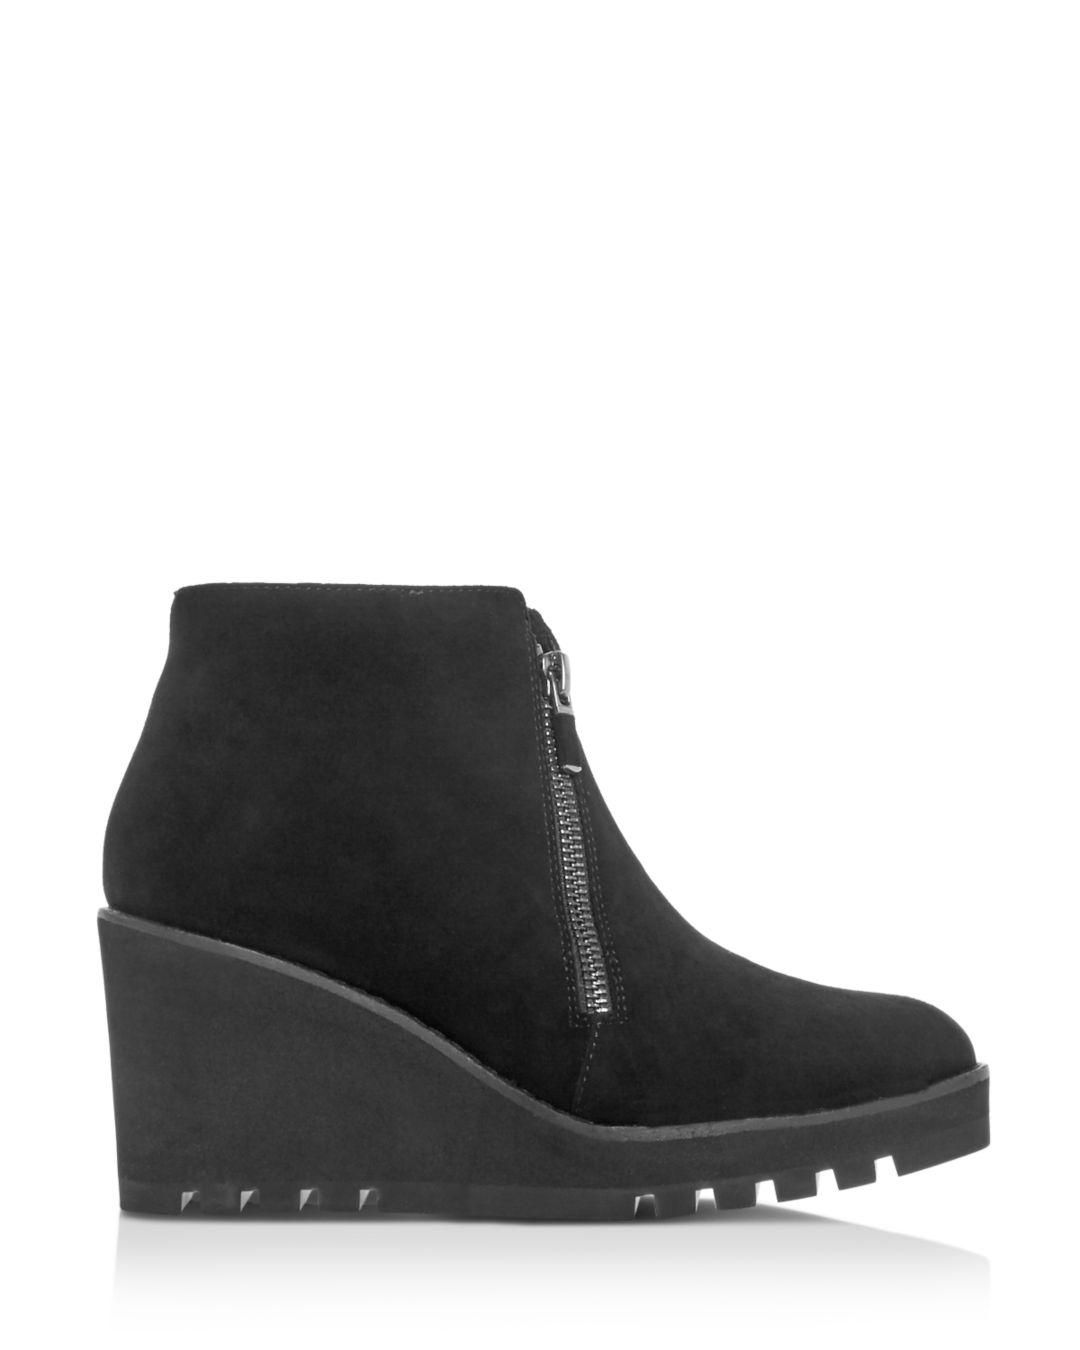 aef7ef416af Lyst - Eileen Fisher Women s Alto Platform Wedge Booties in Black